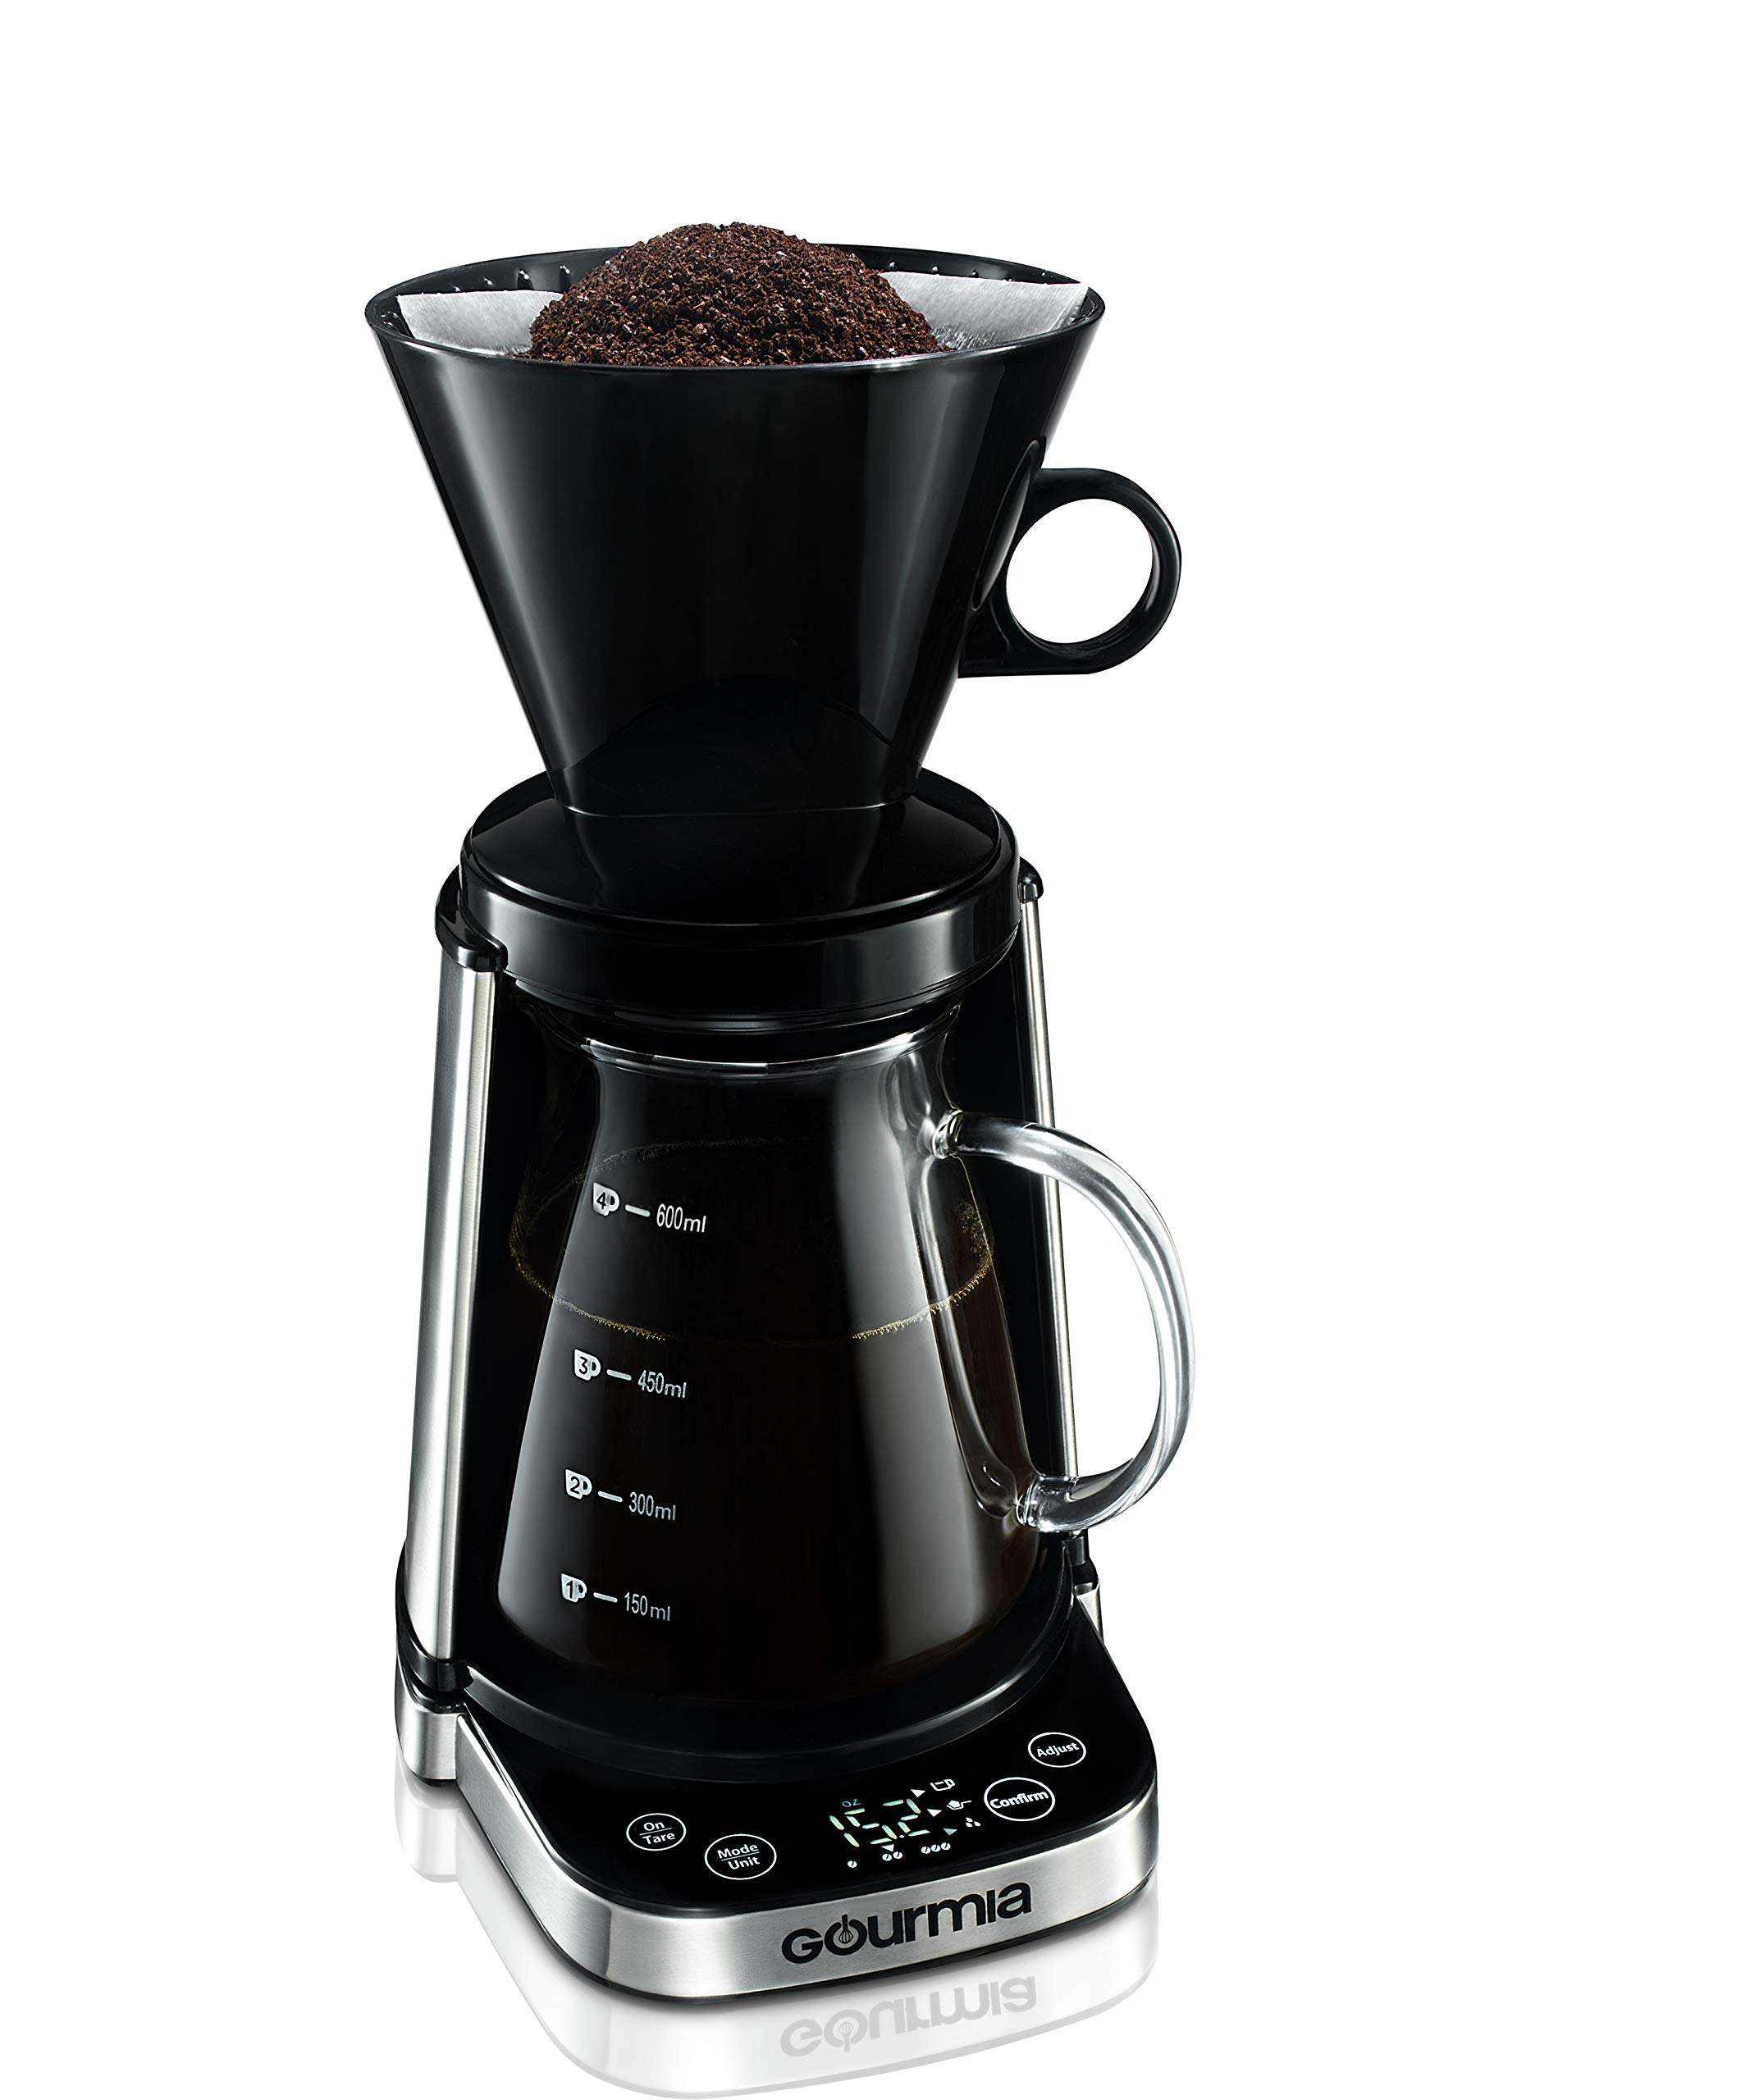 Gourmia GCM3250 Digital Touch Pour-Over Coffee Maker - Automatic and Manual Mode - Integrated Scale - Battery-Powered - 20-Ounce Capacity